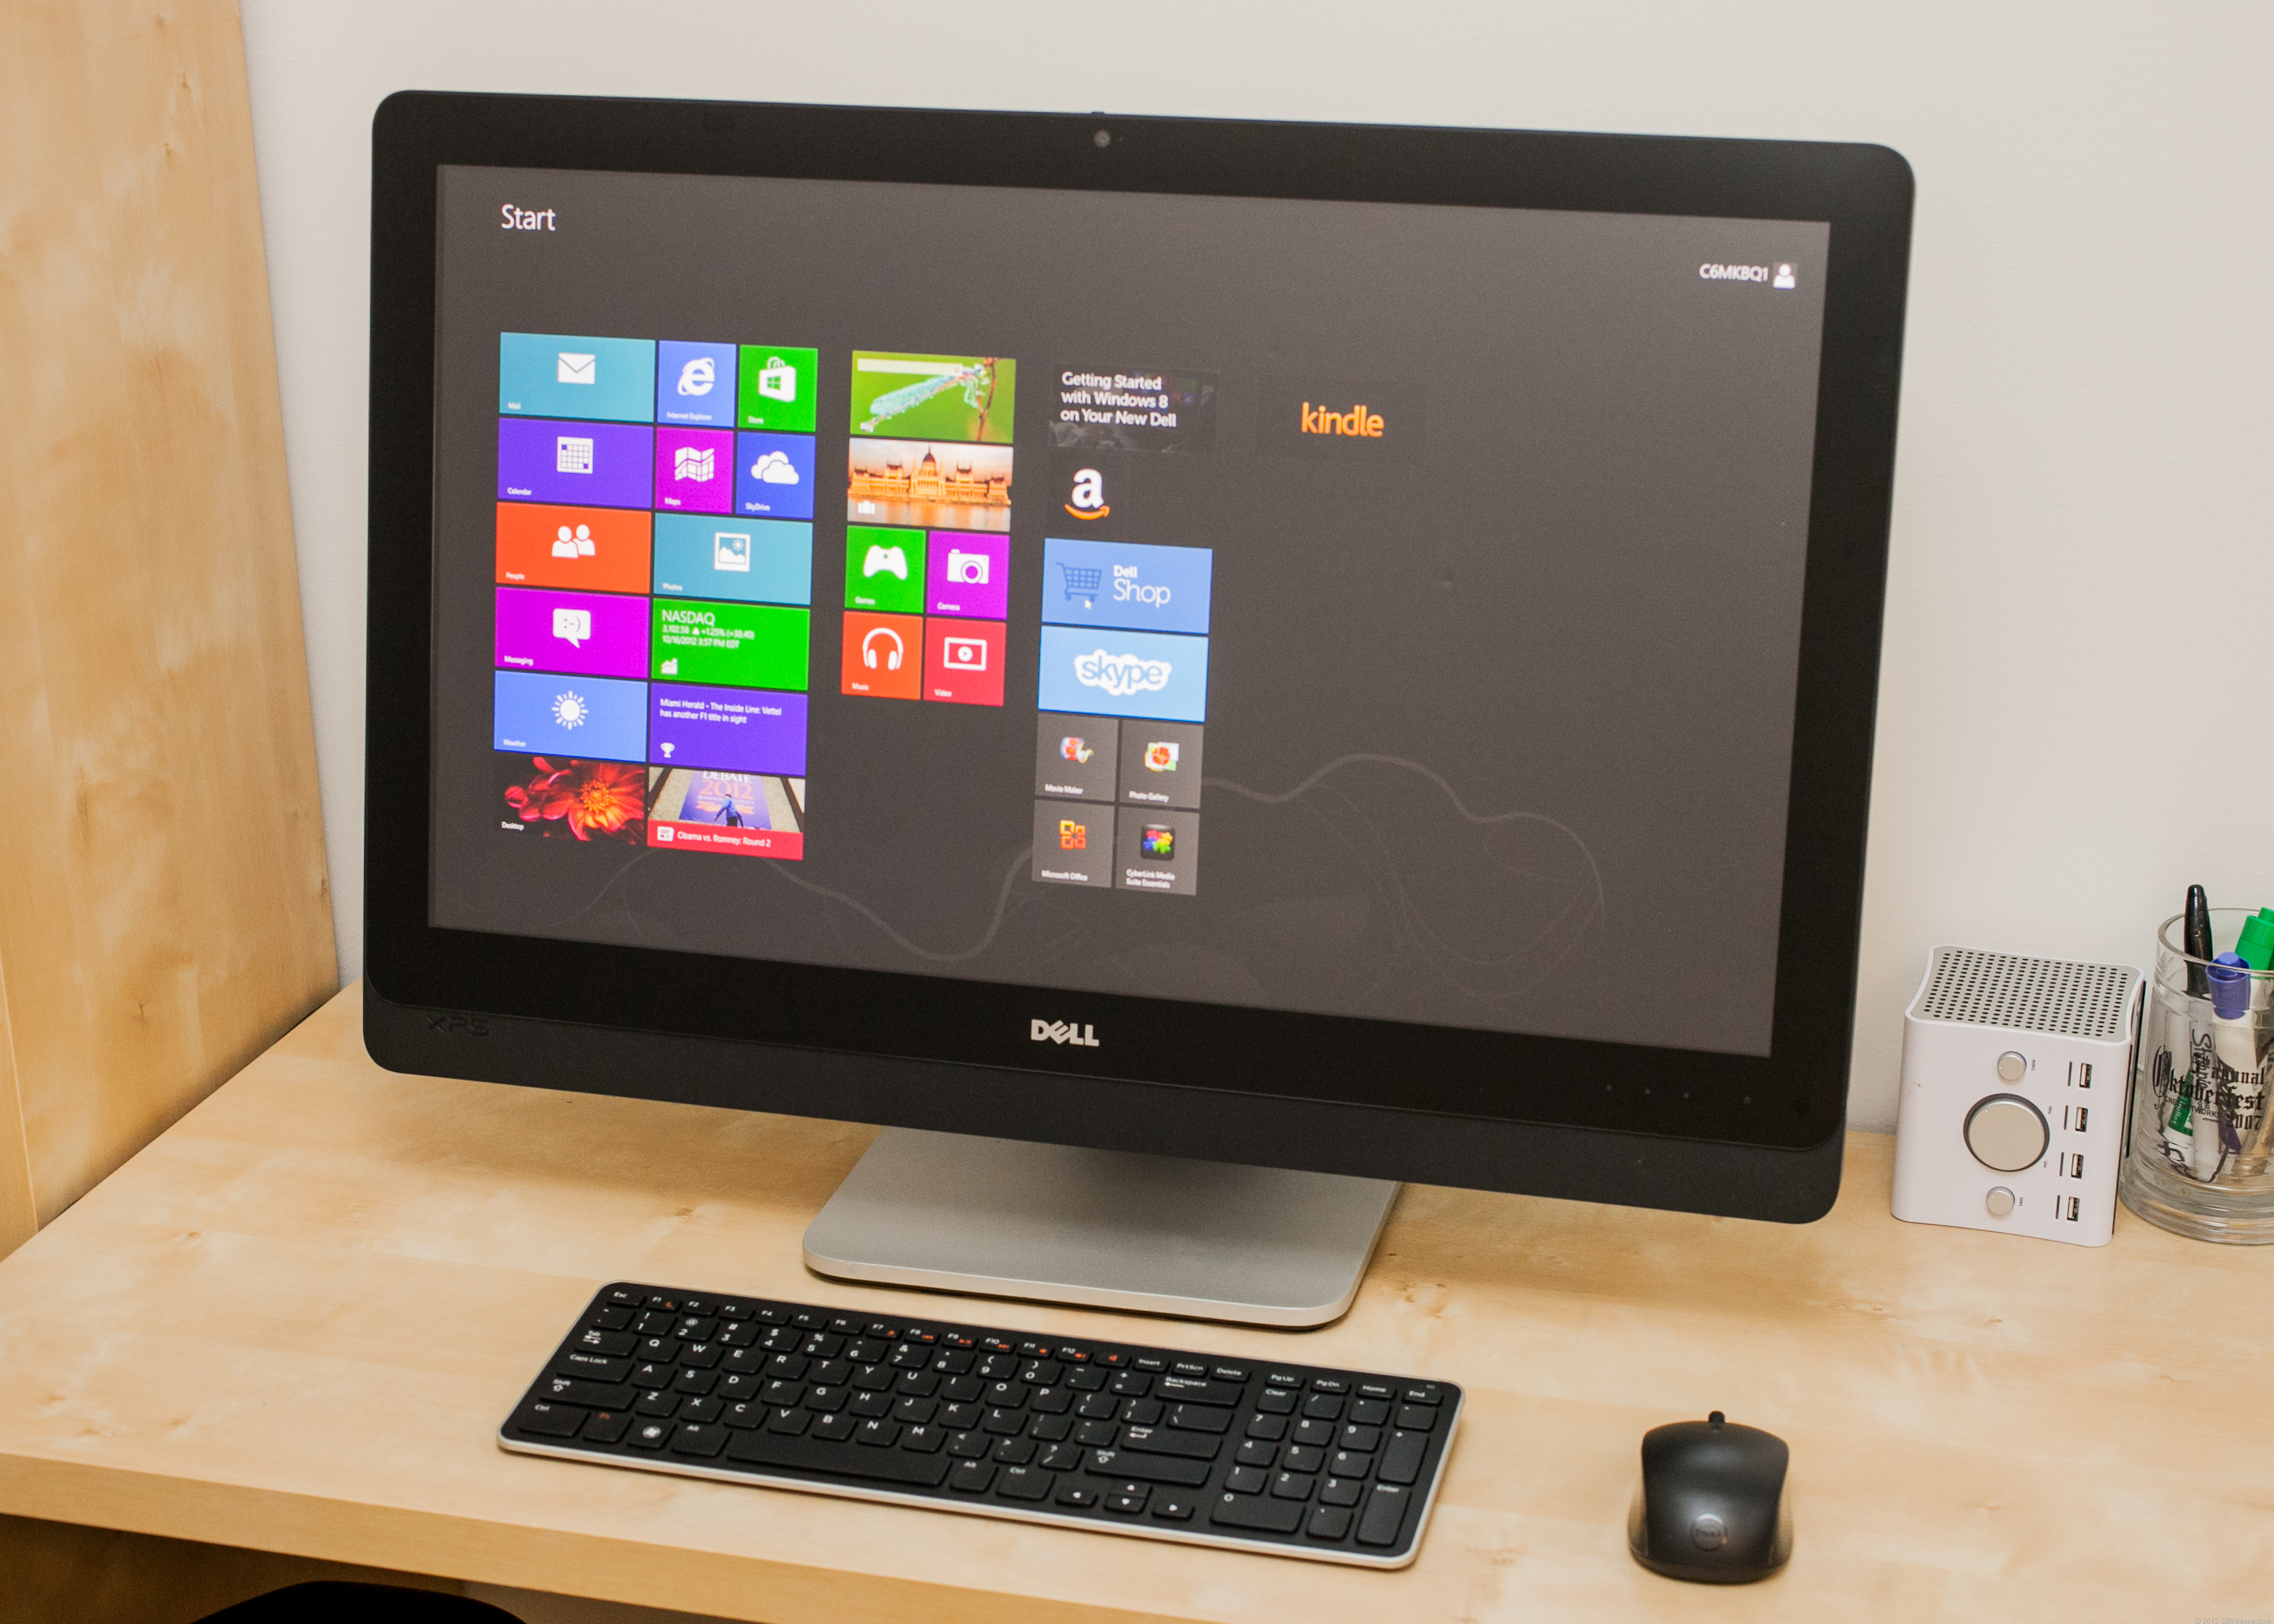 Dell's new XPS One 27 is perhaps the best all-around Windows 8 desktop available.